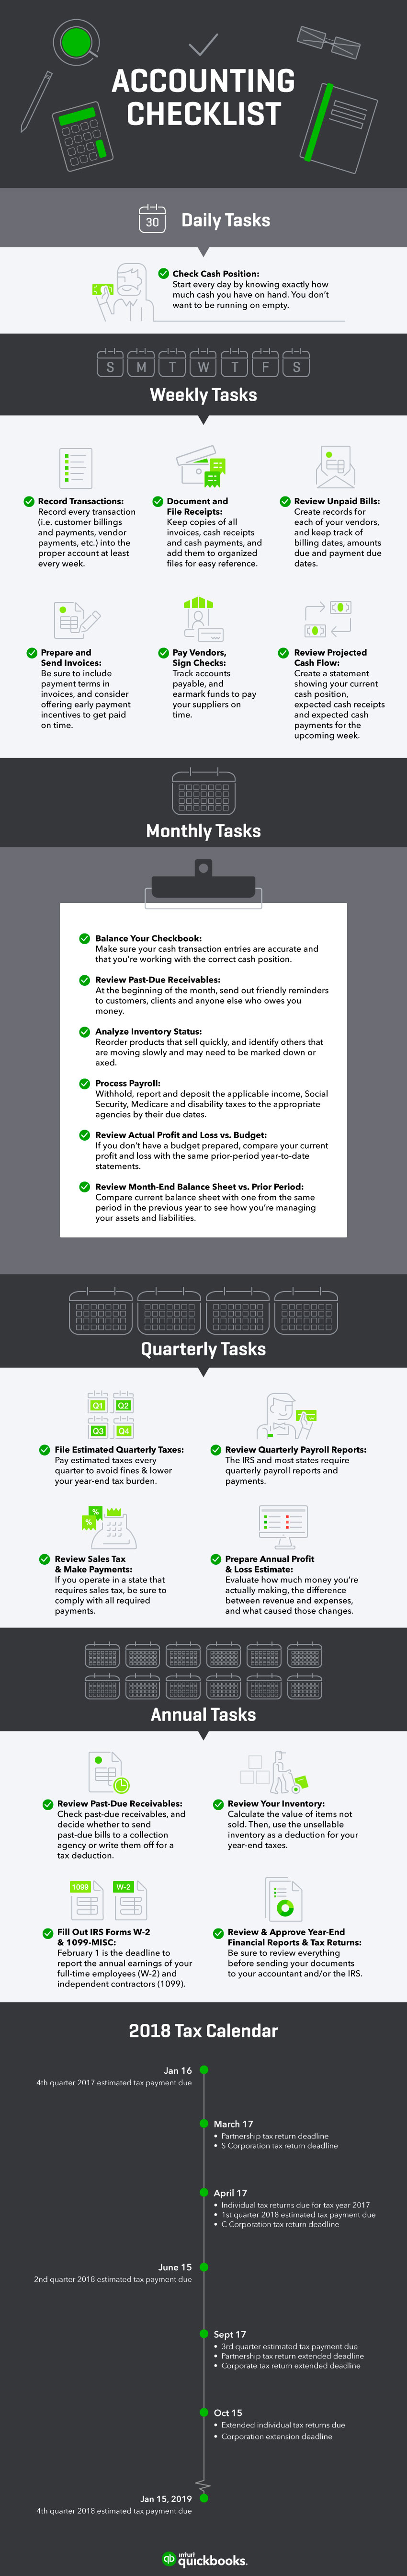 Small Business Accounting Checklist & Infographic | Quickbooks In Bookkeeping Checklist Template